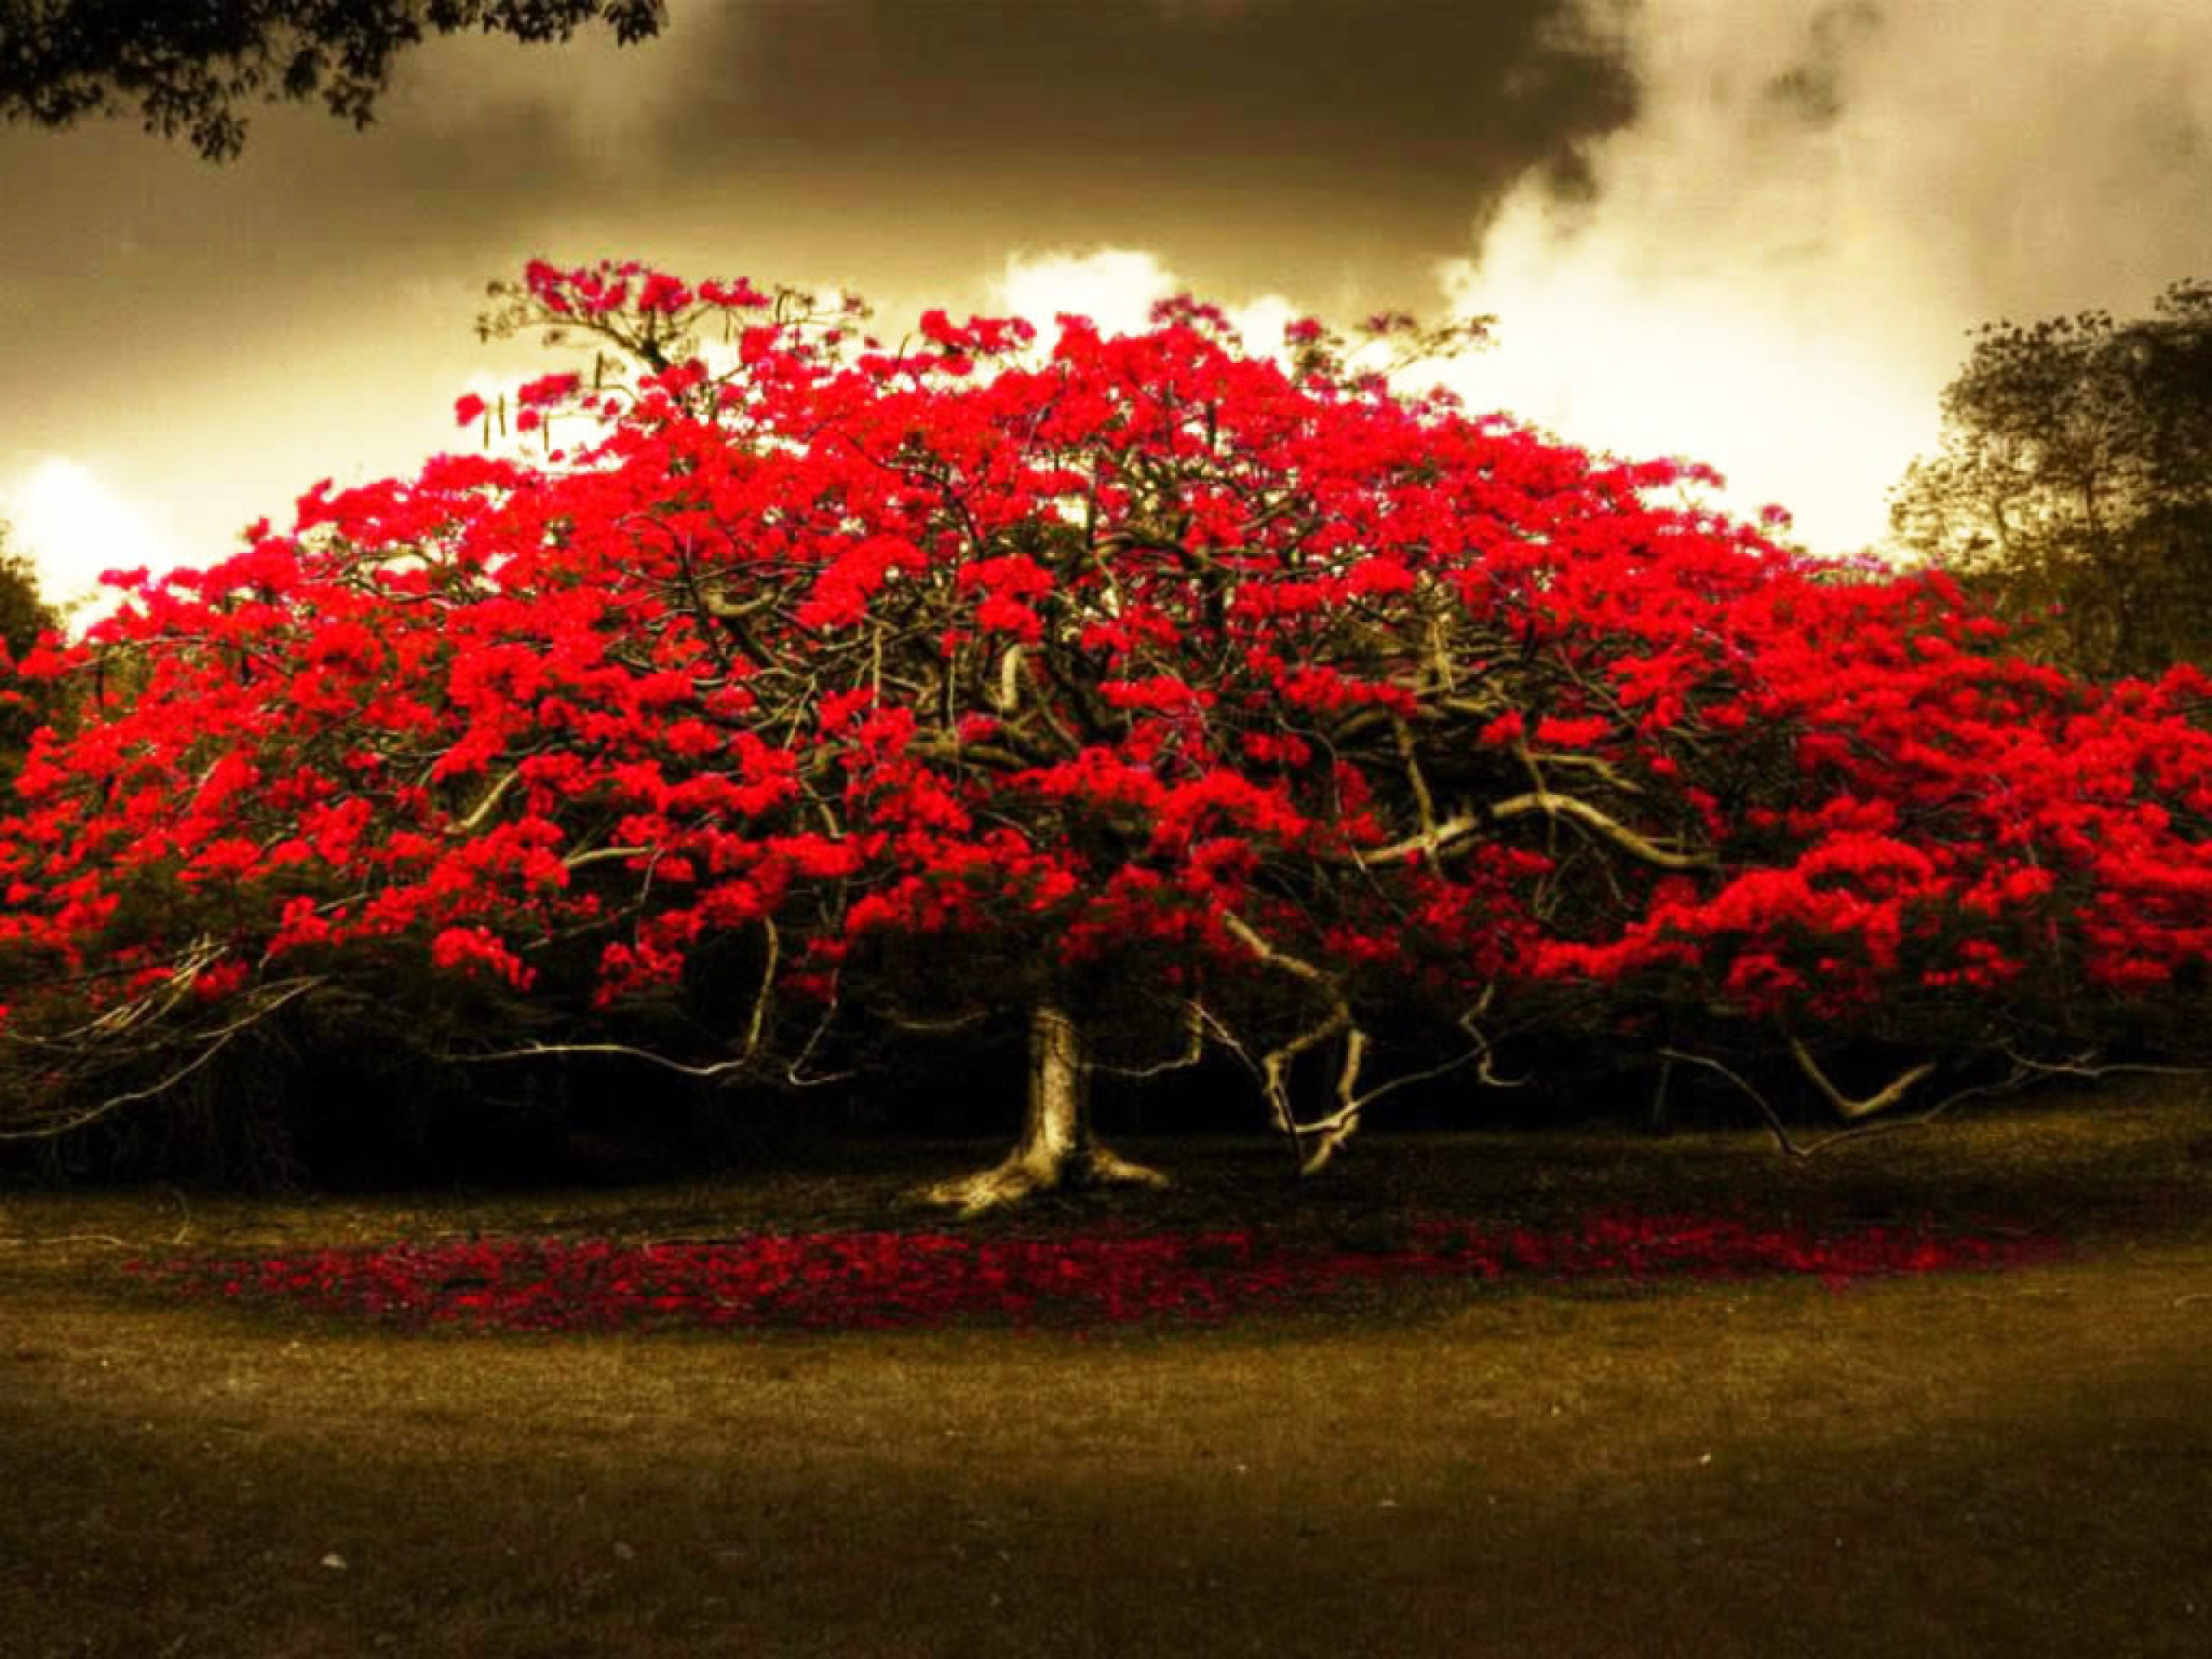 Wallpaper: red flowers tree hd wallpapers 494